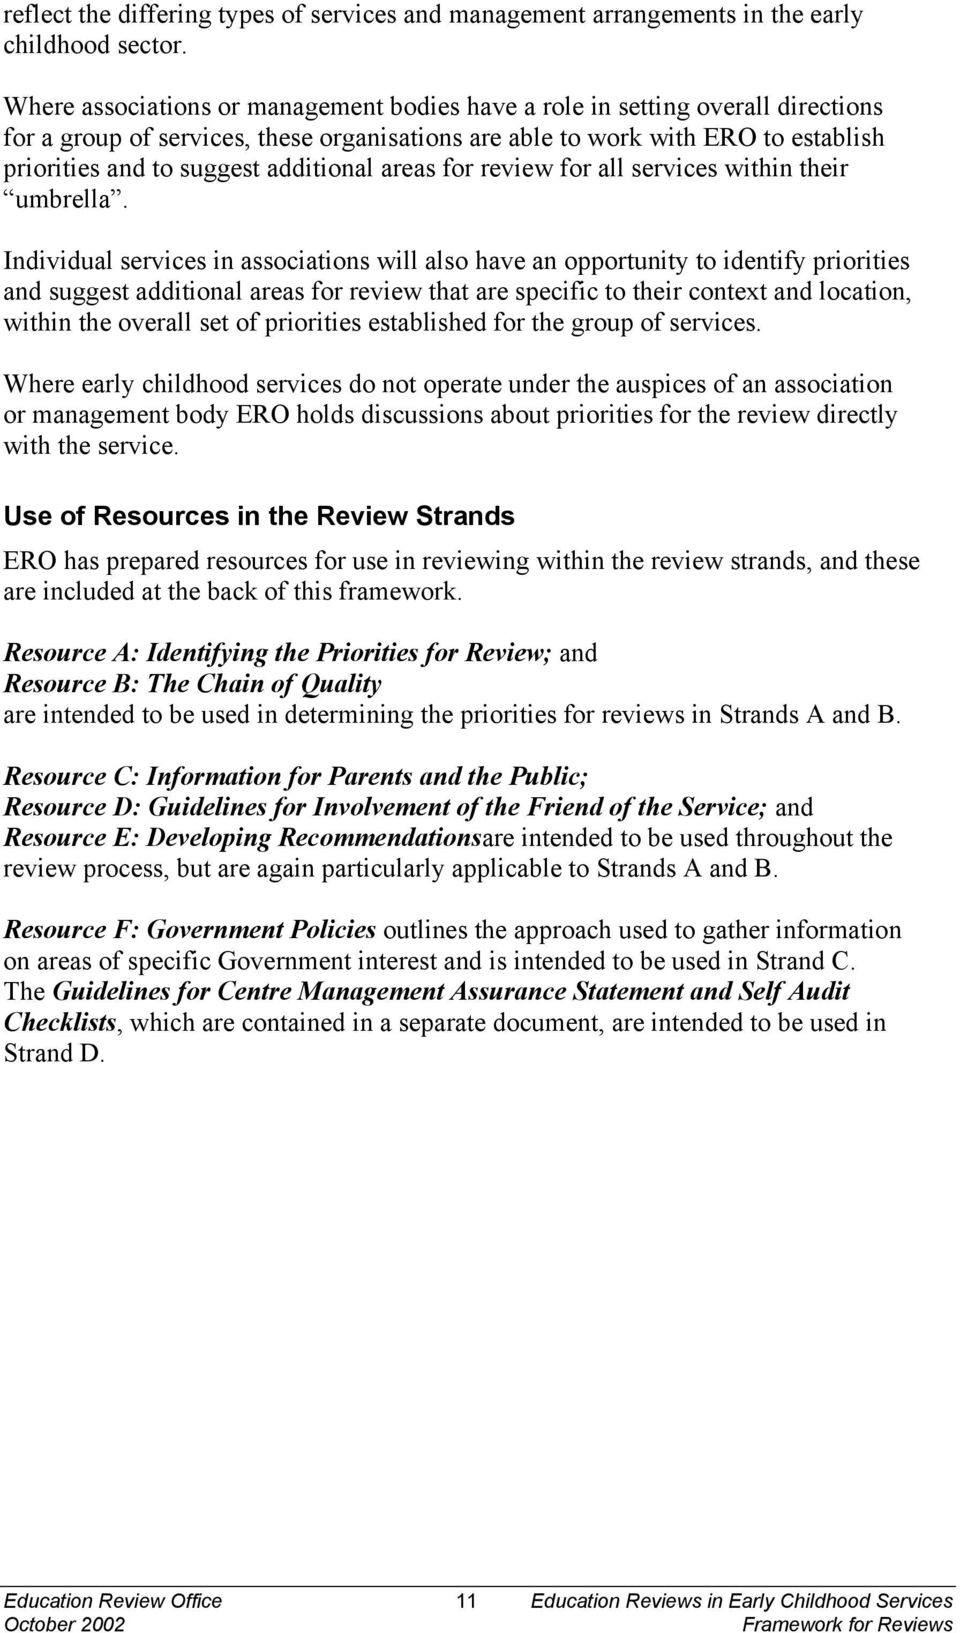 additional areas for review for all services within their umbrella.